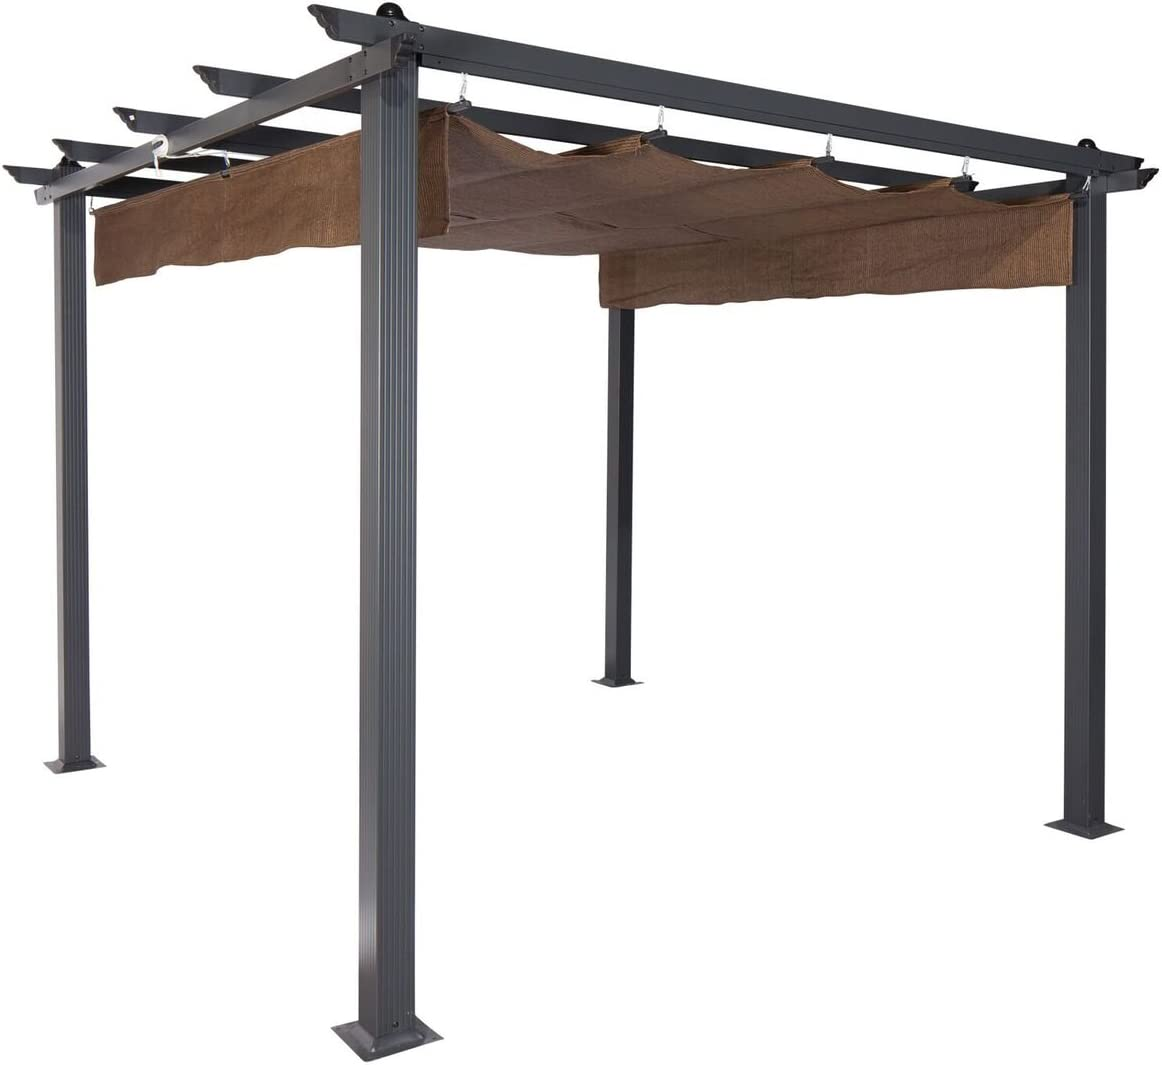 COOLAROO Aurora PERGOLA, Backyard PERGOLA: Amazon.es: Jardín